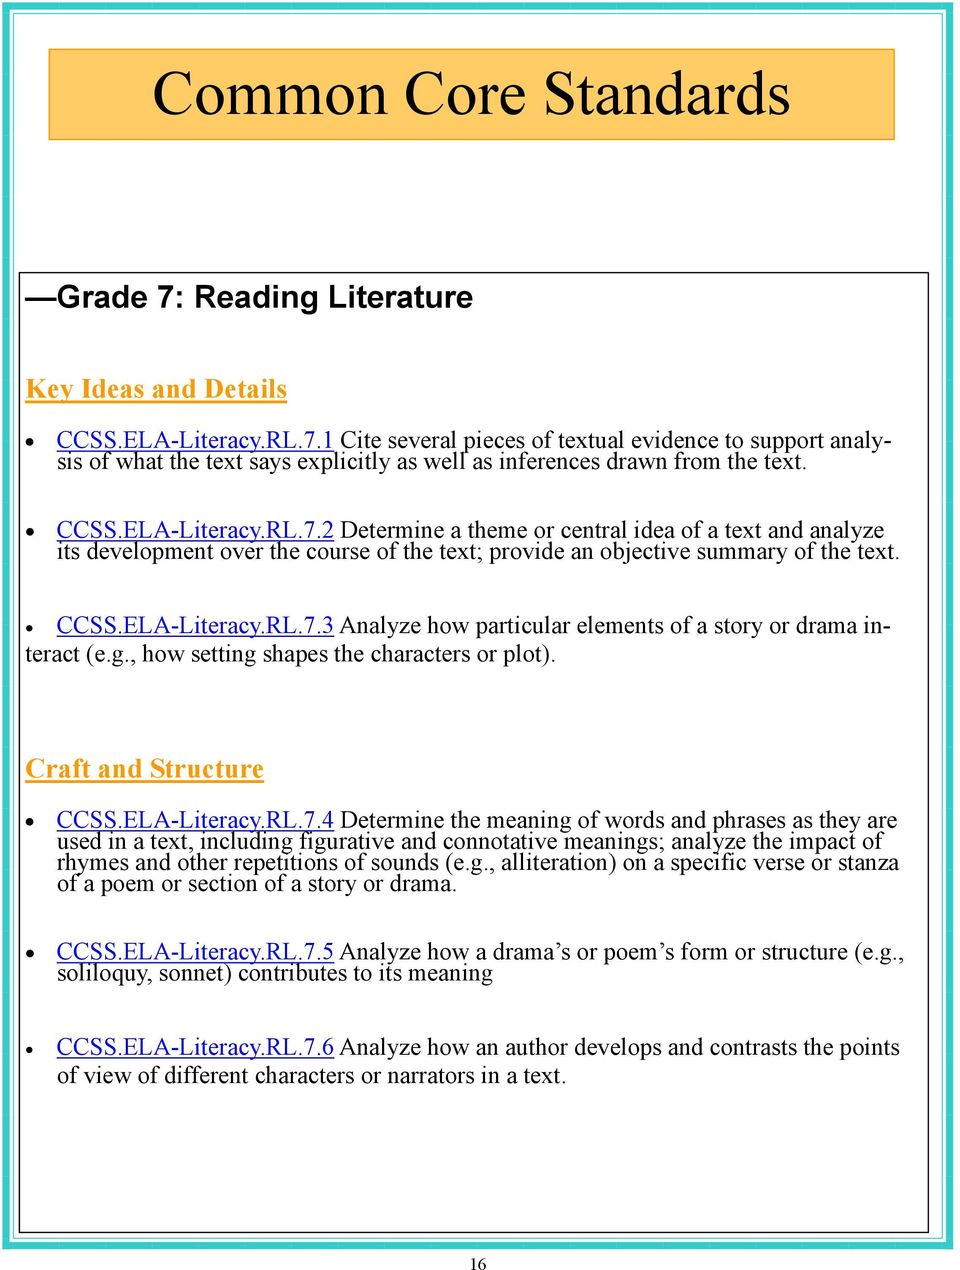 g., how setting shapes the characters or plot). Craft and Structure CCSS.ELA-Literacy.RL.7.